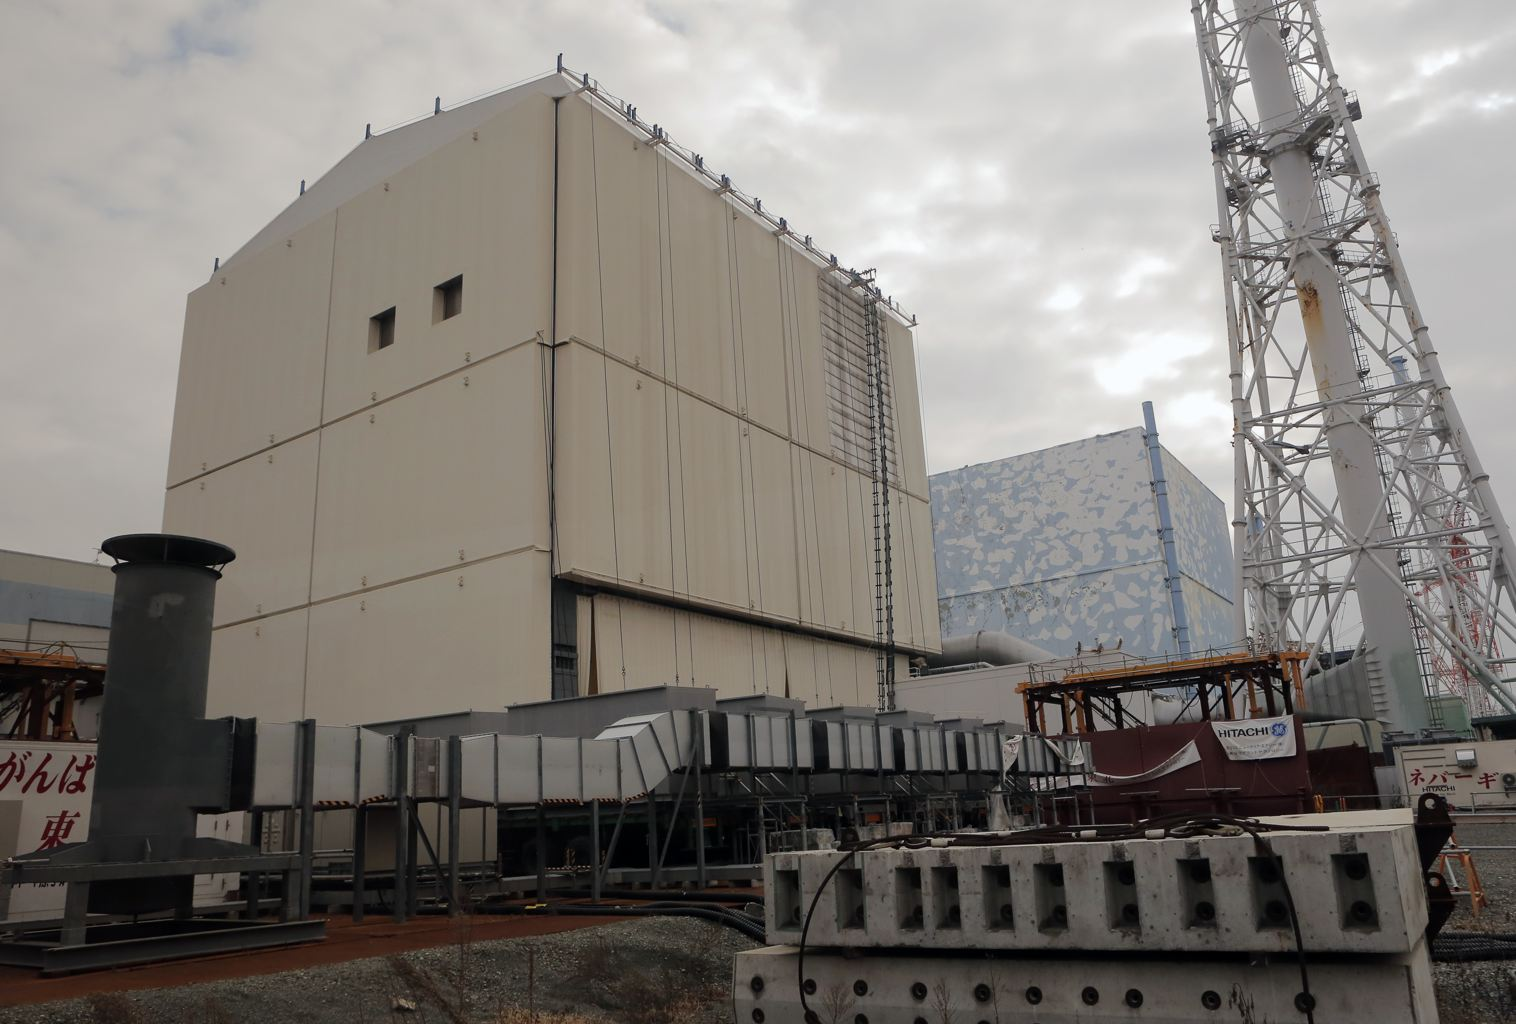 fukushima nuclear power plant essay The catastrophe at fukushima-daiichi shed an ominous, dark cloud over the nuclear industry and with an aging fleet of nuclear power plants the high aspirations for safety is paramount  since fukushima-daiichi, the landscape for nuclear energy has changed, forever.